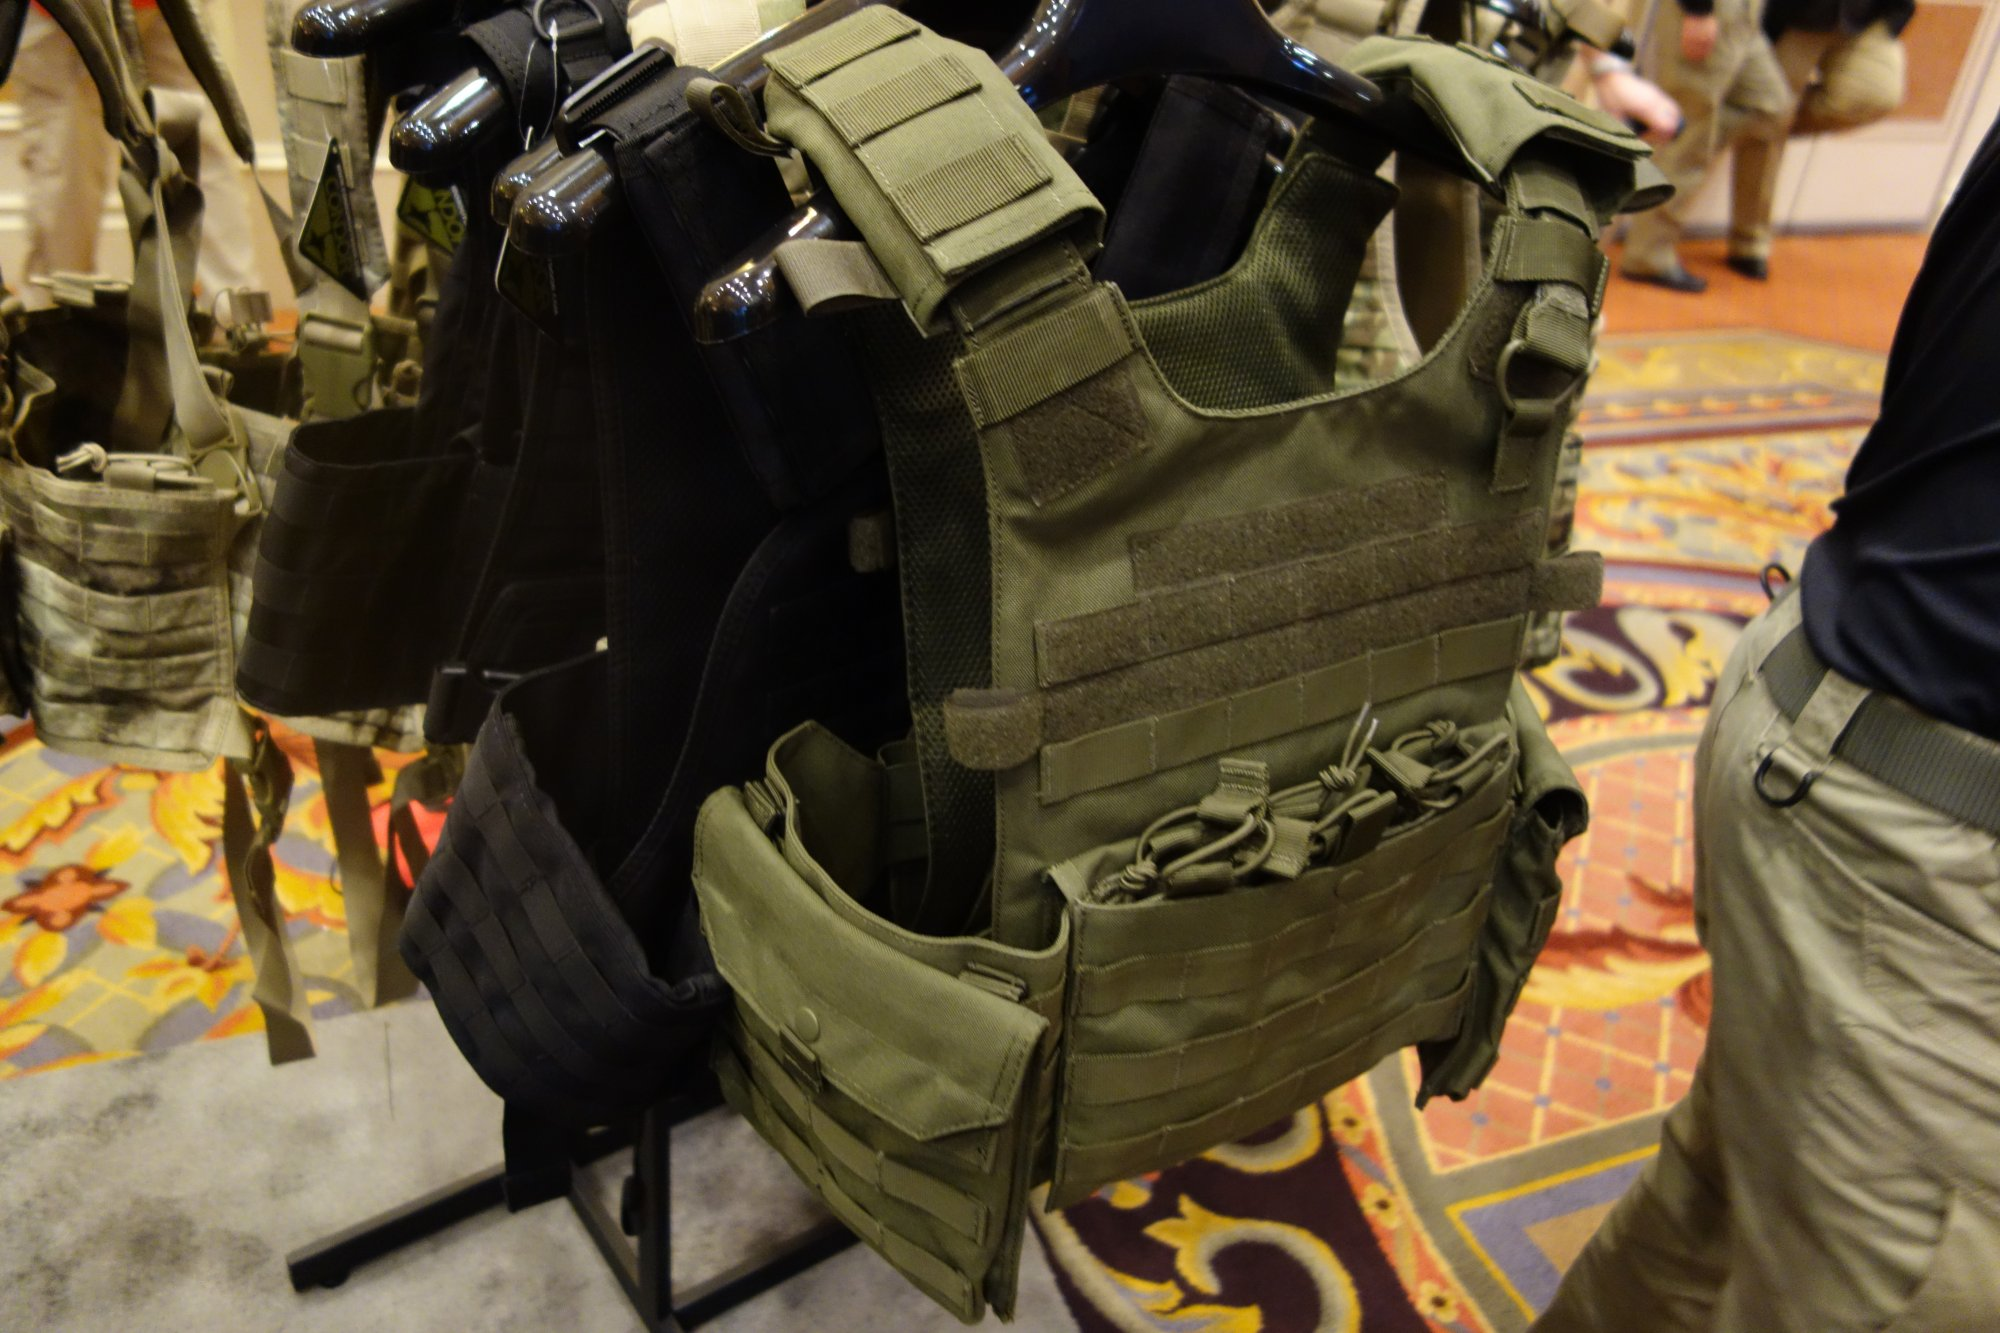 Condor Gunner Lightweight Plate Carrier Quick Release Tactical Armor Plate Carrier Body Armor Tactical Vest Henry Ko Condor Outdoor Products SHOT Show 2014 David Crane DefenseReview.com DR 3 Condor Gunner Lightweight Plate Carrier: Minimalist Quick Release Tactical Armor Plate Carrier/Tactical Vest (Body Armor) for Tactical Operations